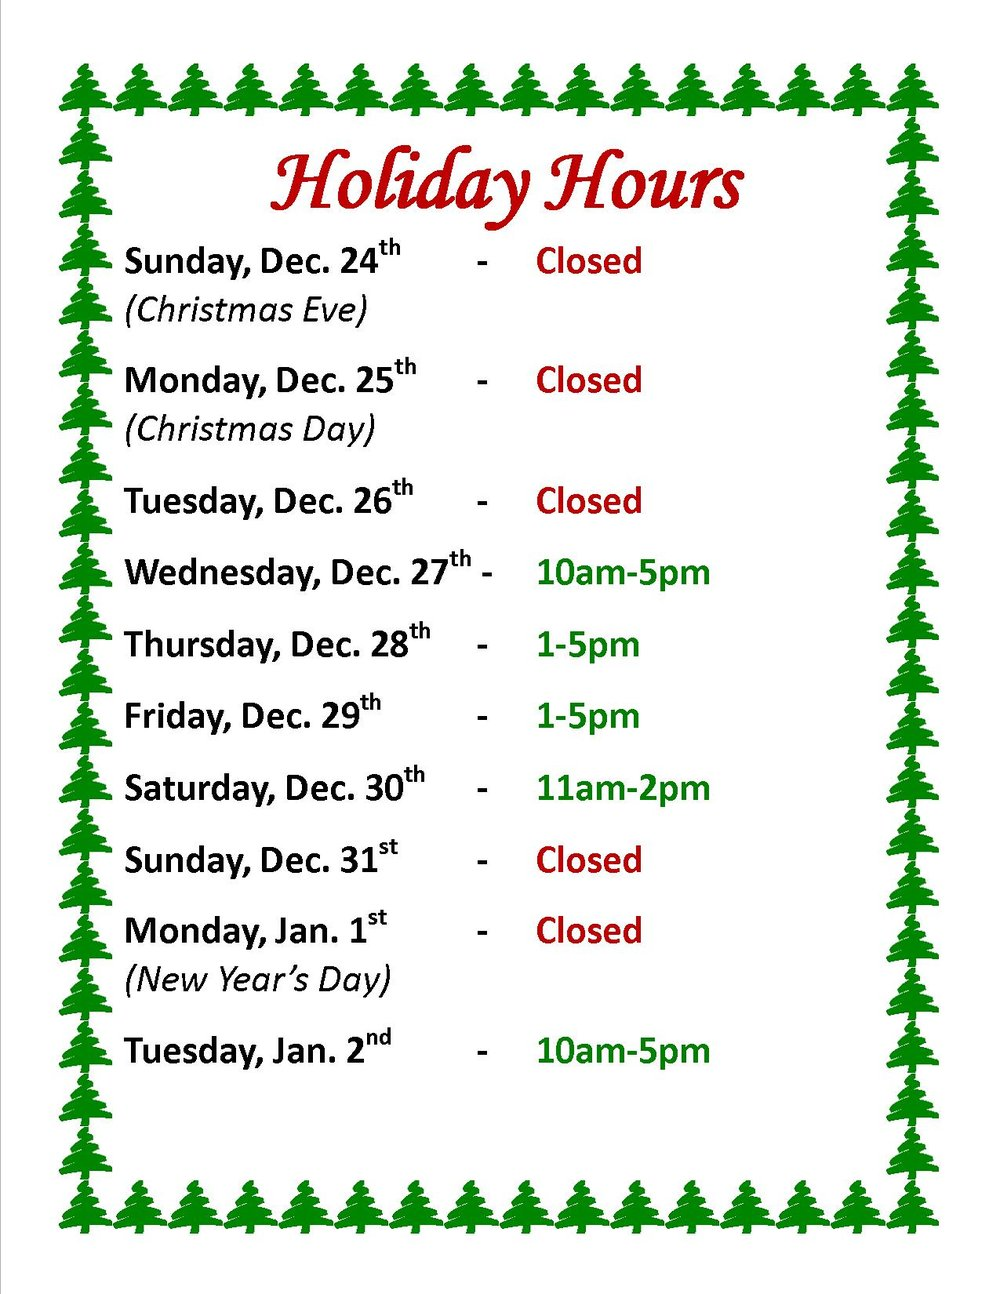 holt holiday hours.jpg